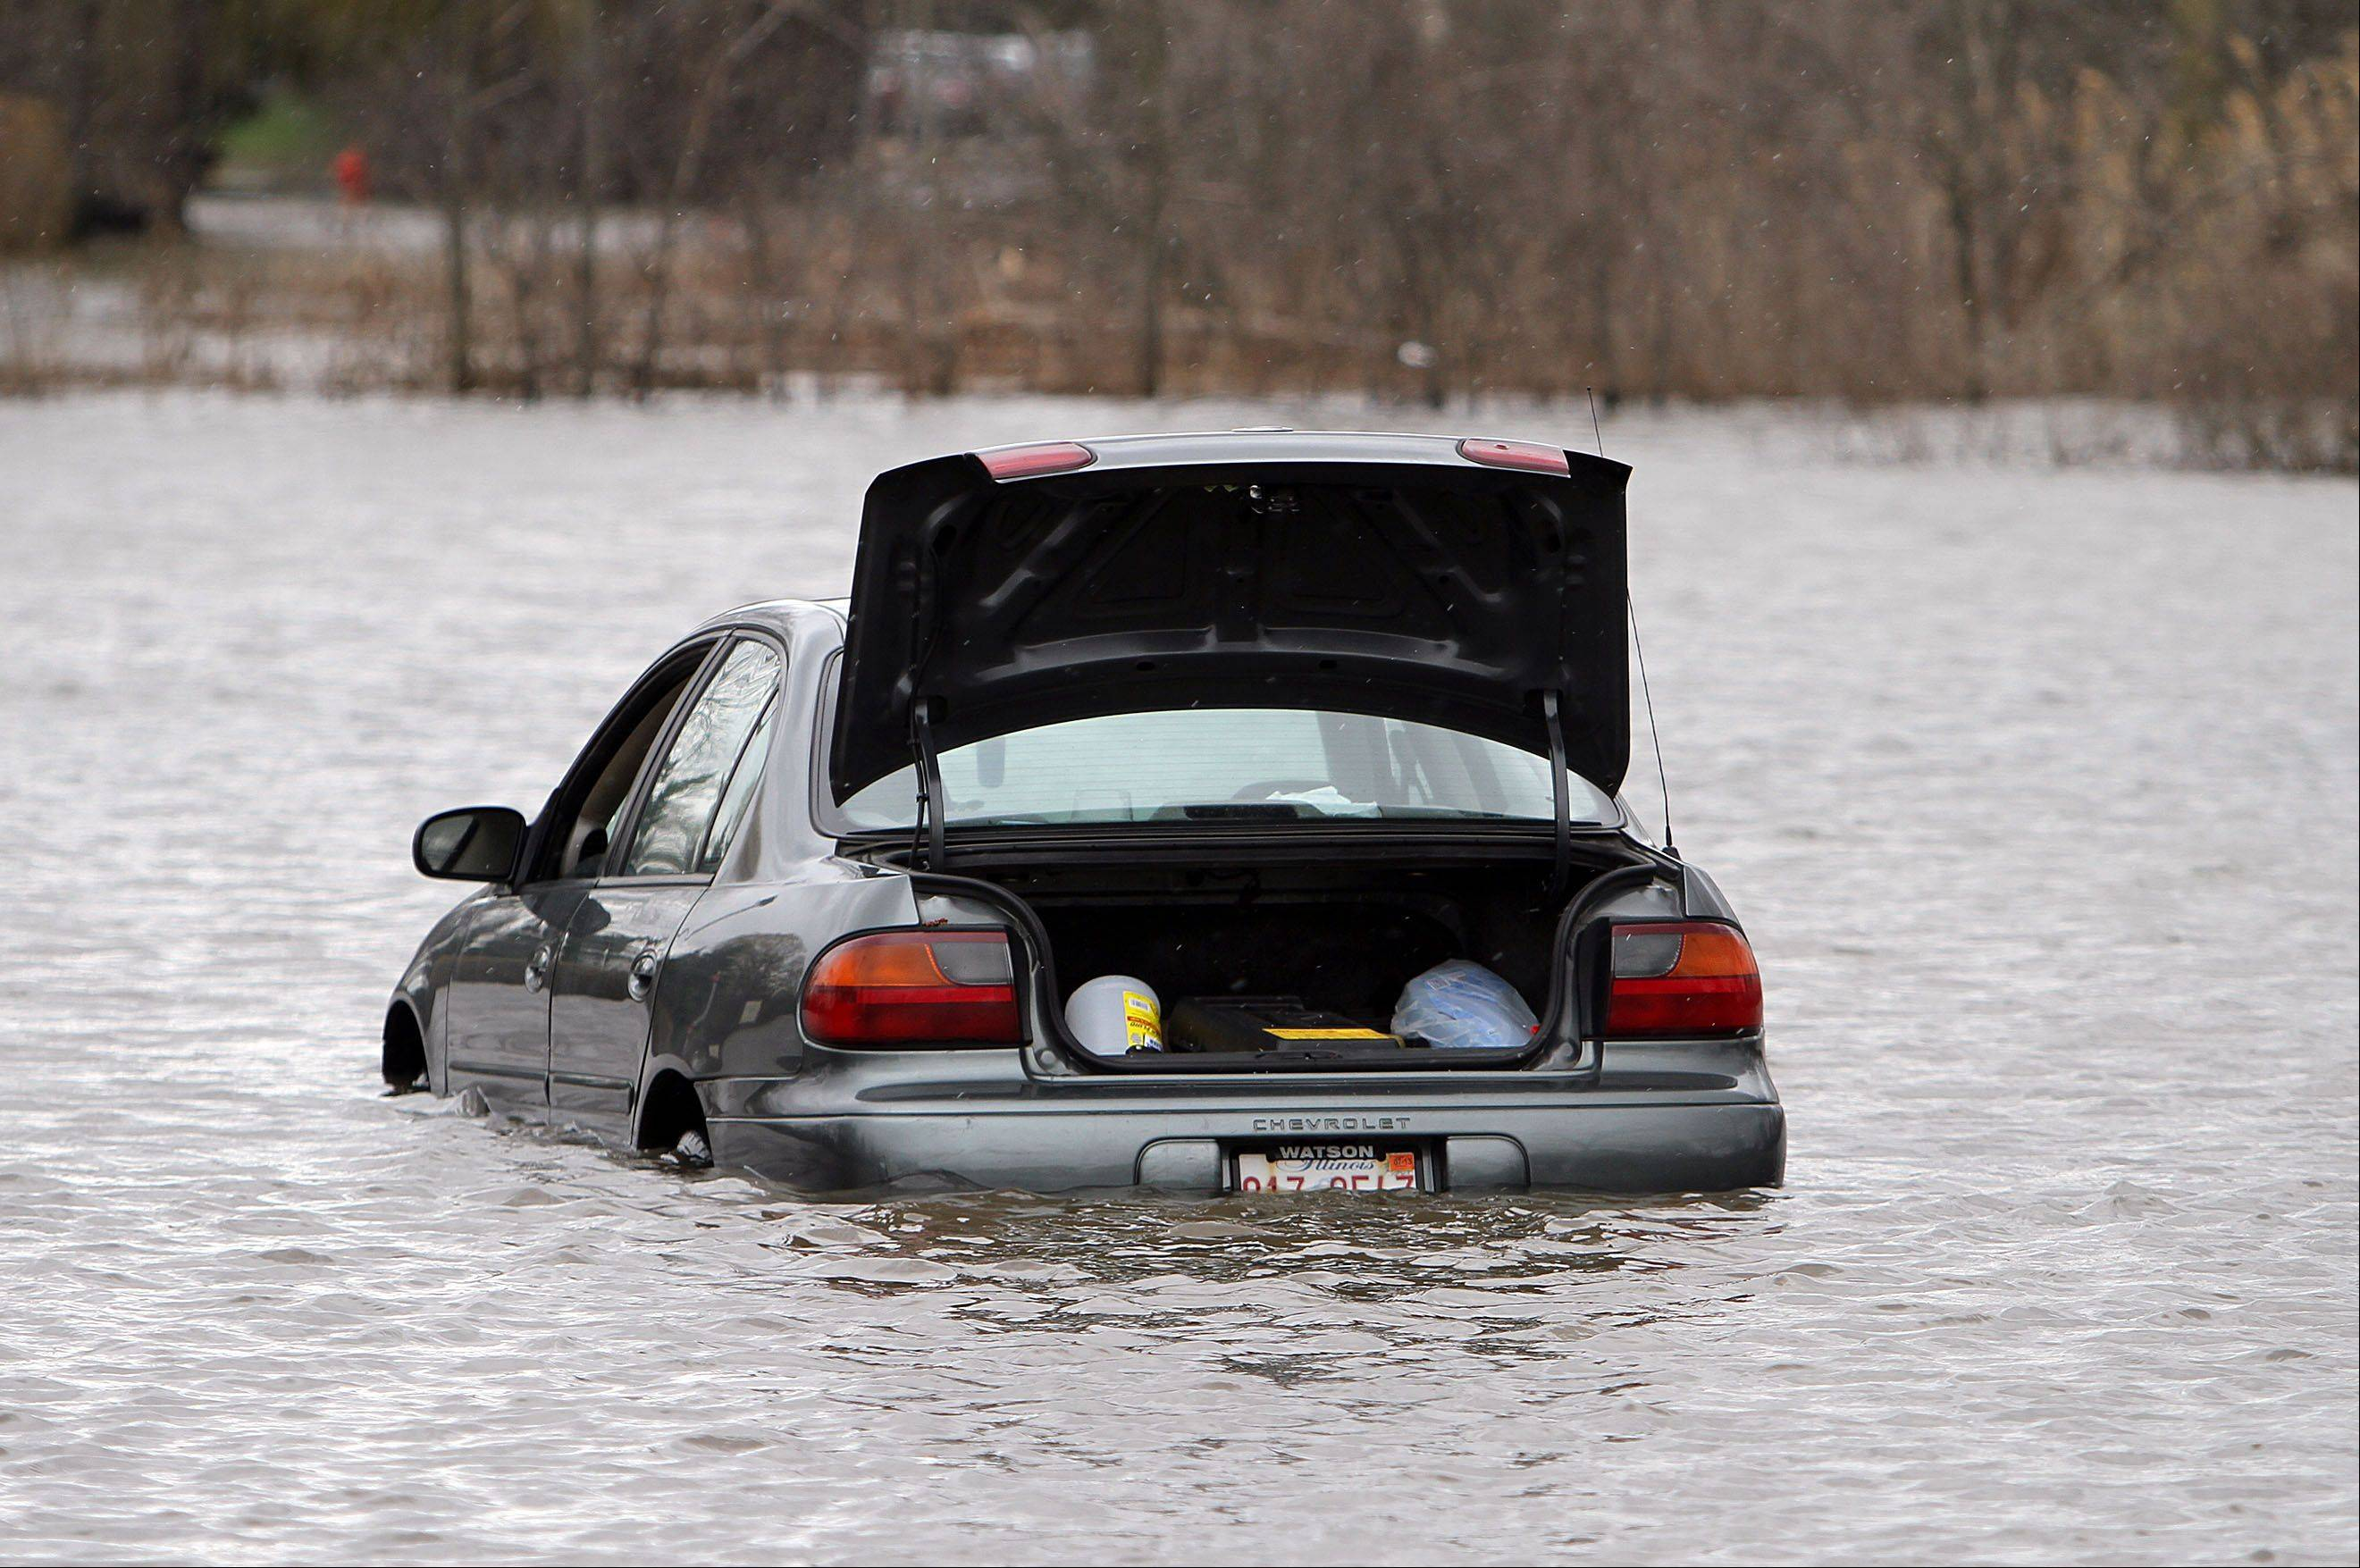 A car is stranded in the parking lot of Bank Financial near the entrance to the Lincolnshire Marriott Resort on Friday.